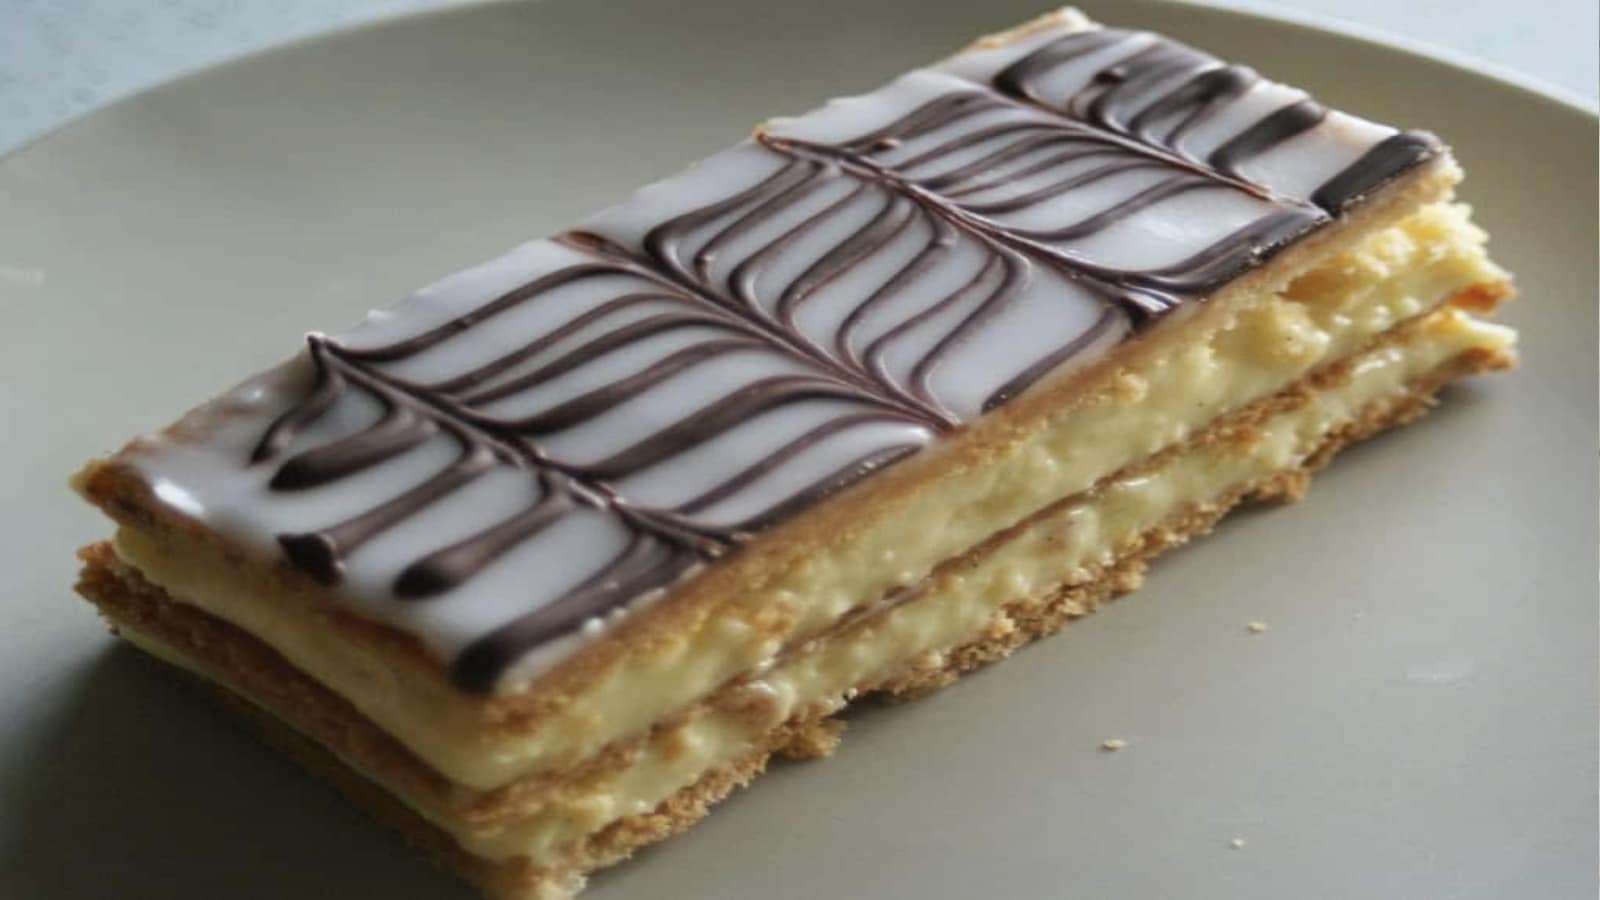 Recette mille feuille maison inratable